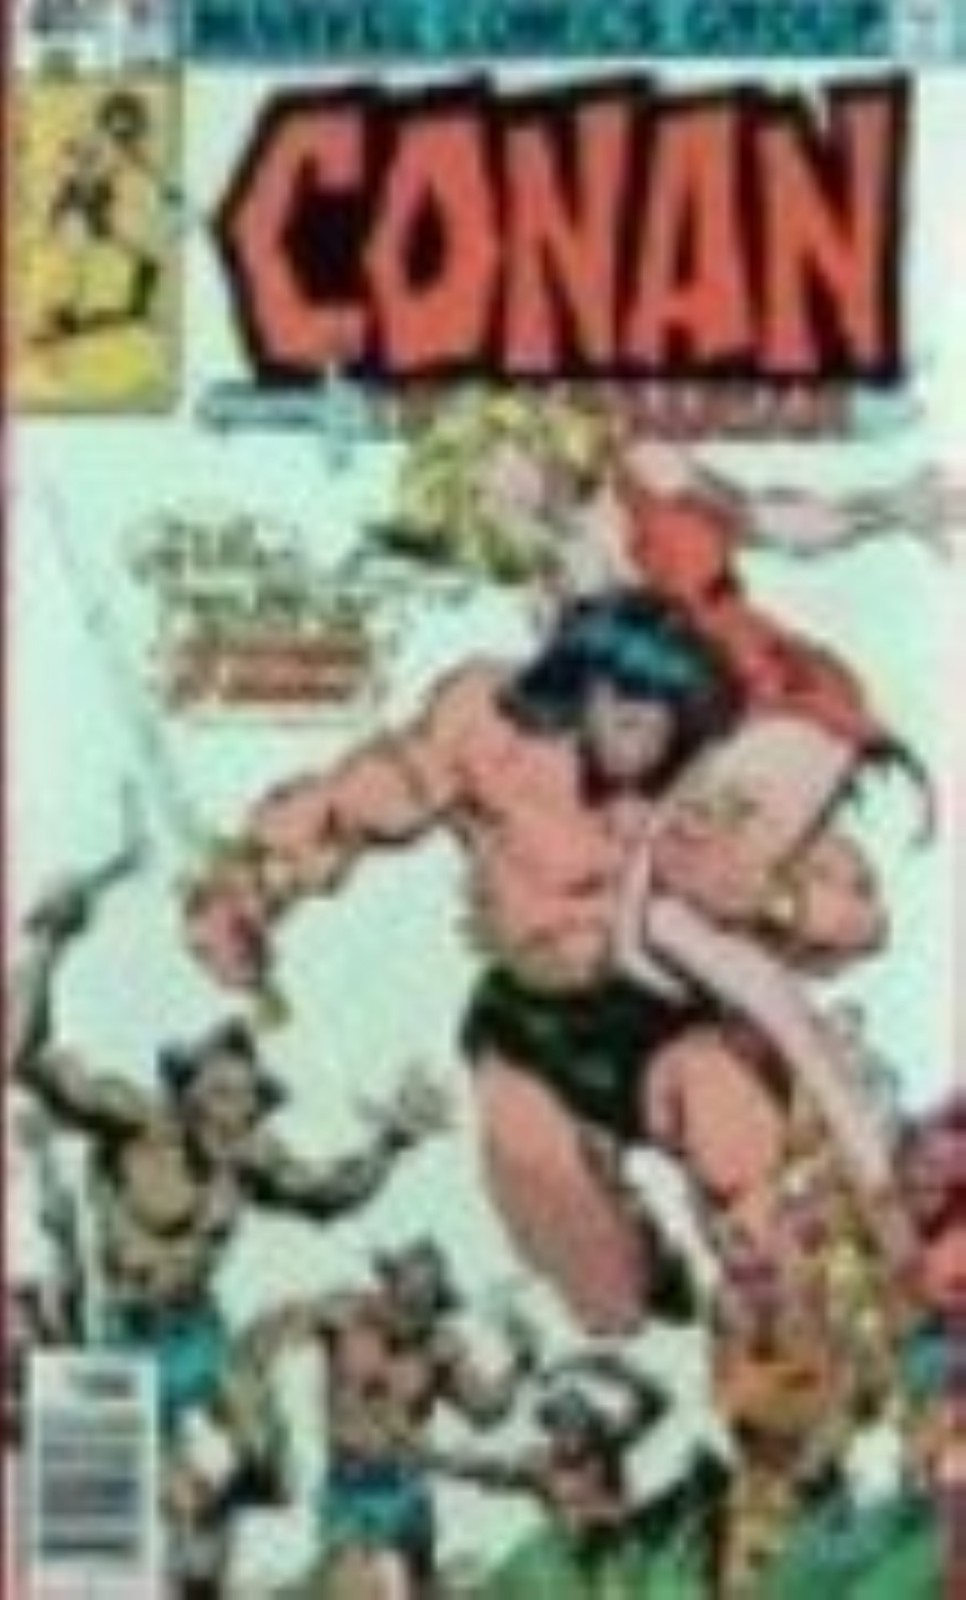 108 Conan The Barbarian Jan 01, 1979 Marvel Comics Group